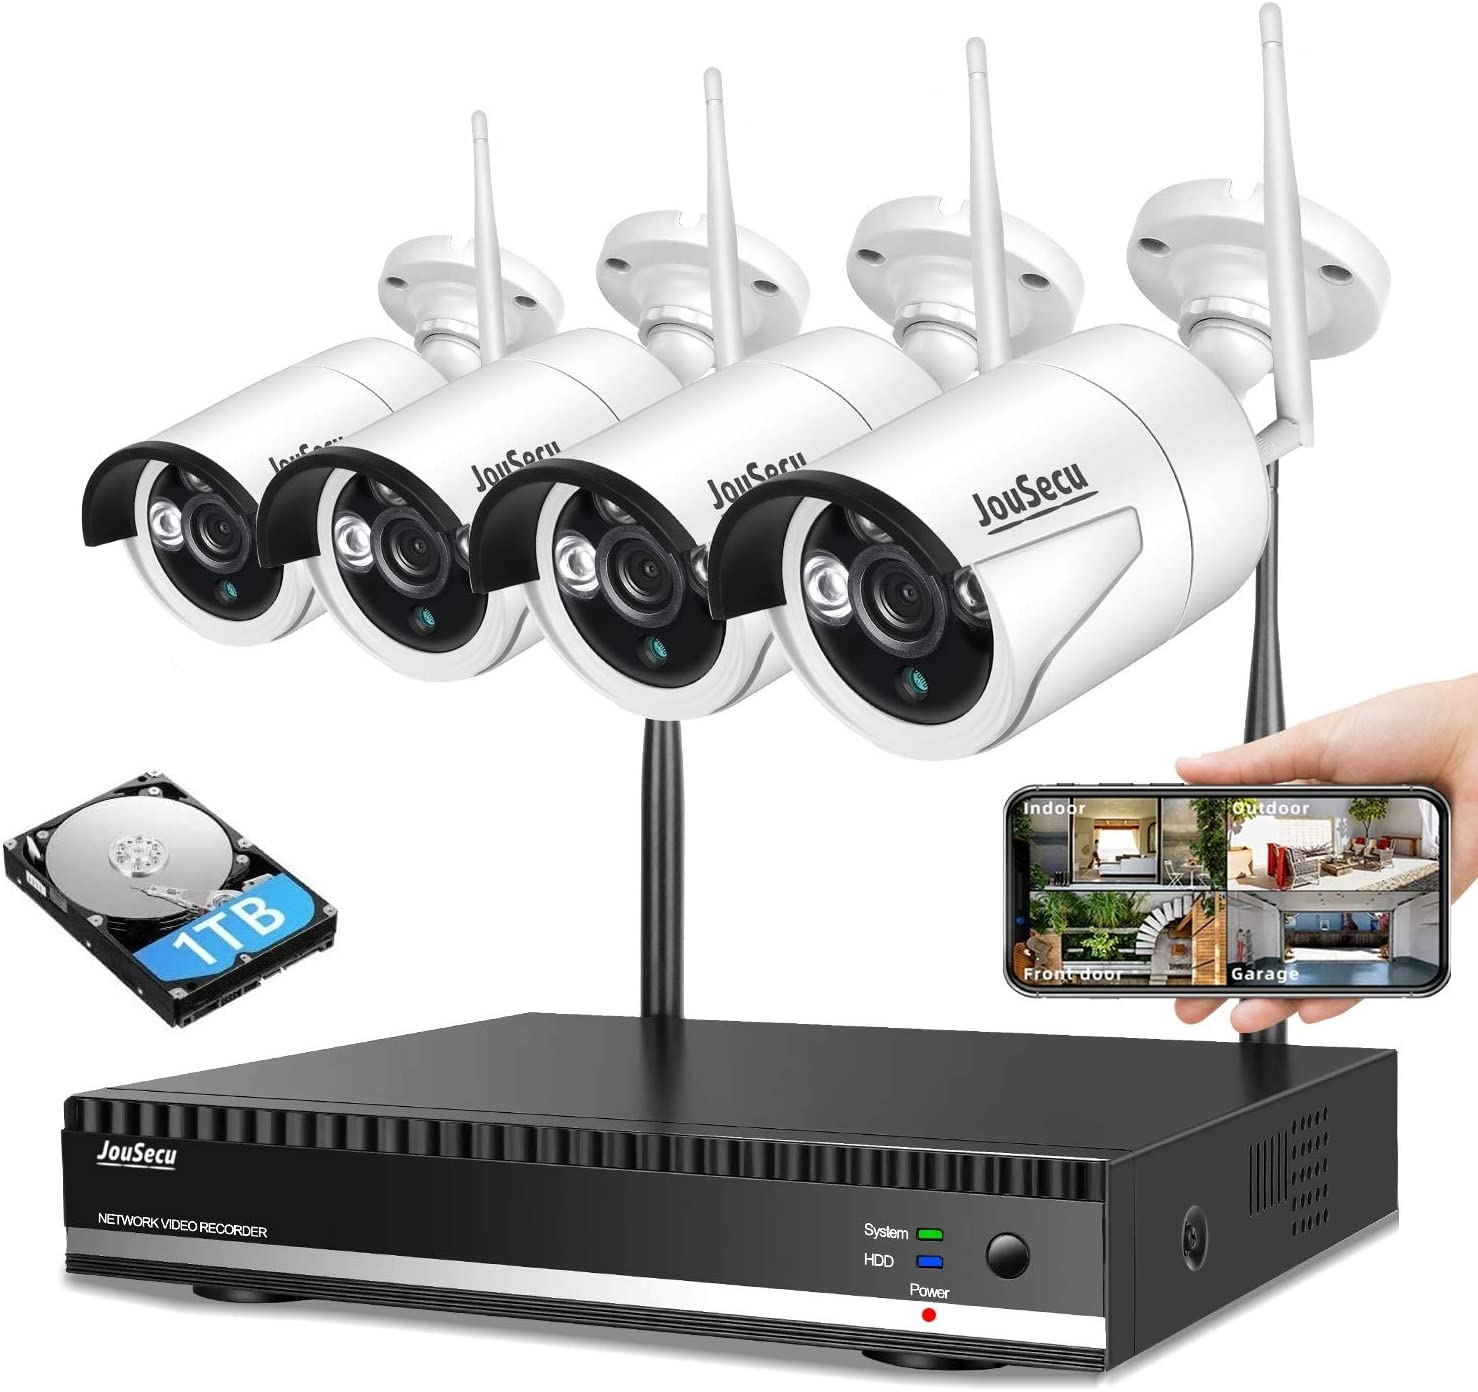 Home Security Camera System Wireless Surveillance NVR Kit with 8CH NVR 4Pcs 1080P 1-Way Audio Night Vision Remote View Motion Detection Waterproof with 1TB Hard Drive